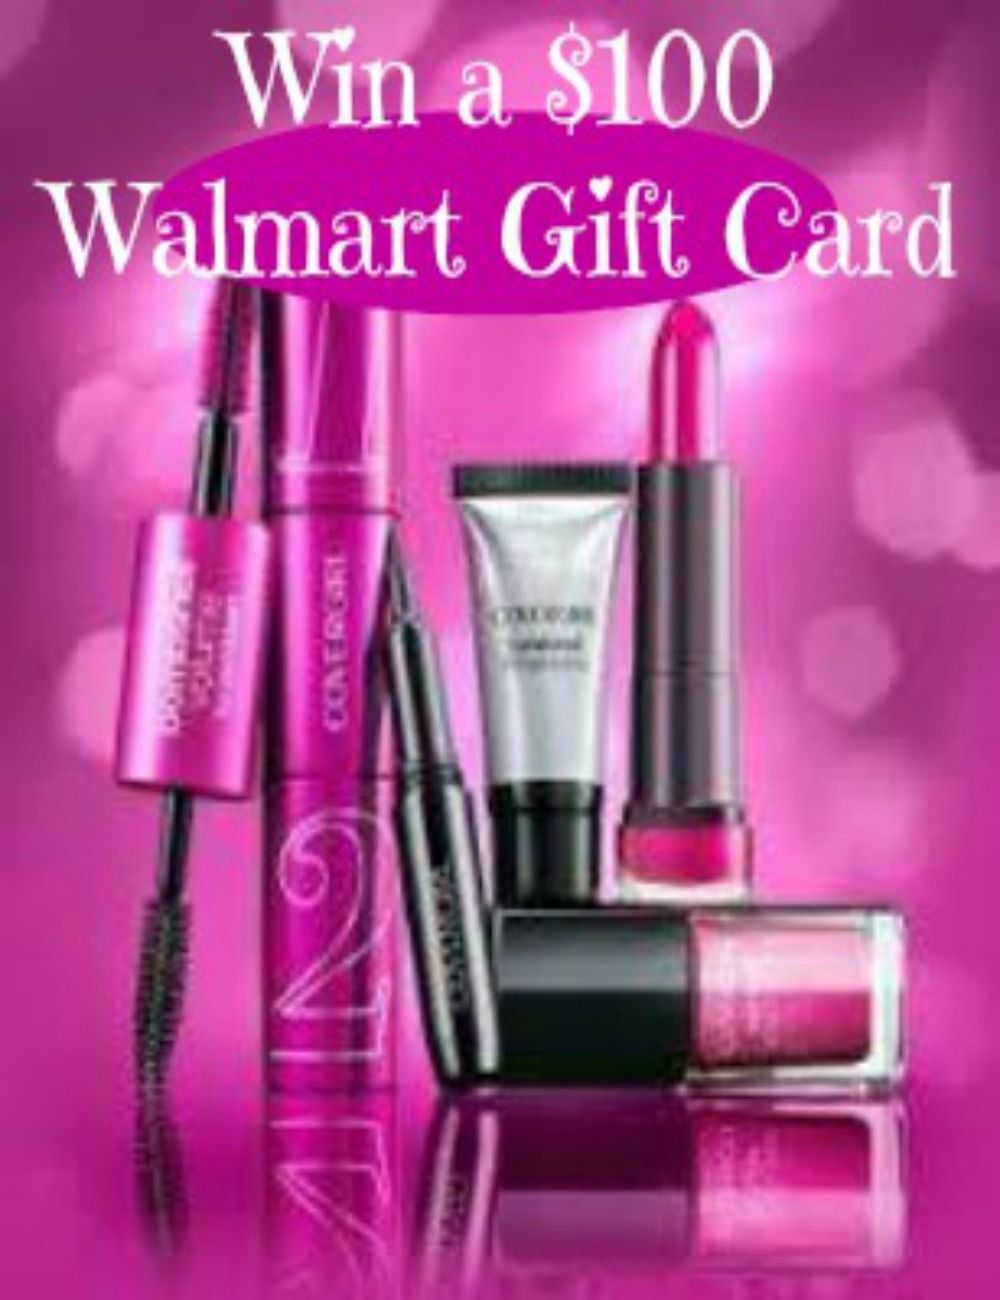 #WIN A $100 WALMART GIFT CARD!!  Enter @Nancy Style & Decor here: http://www.styledecordeals.com/2014/01/100-walmart-gift-card-giveaway.html  Good Luck! :)